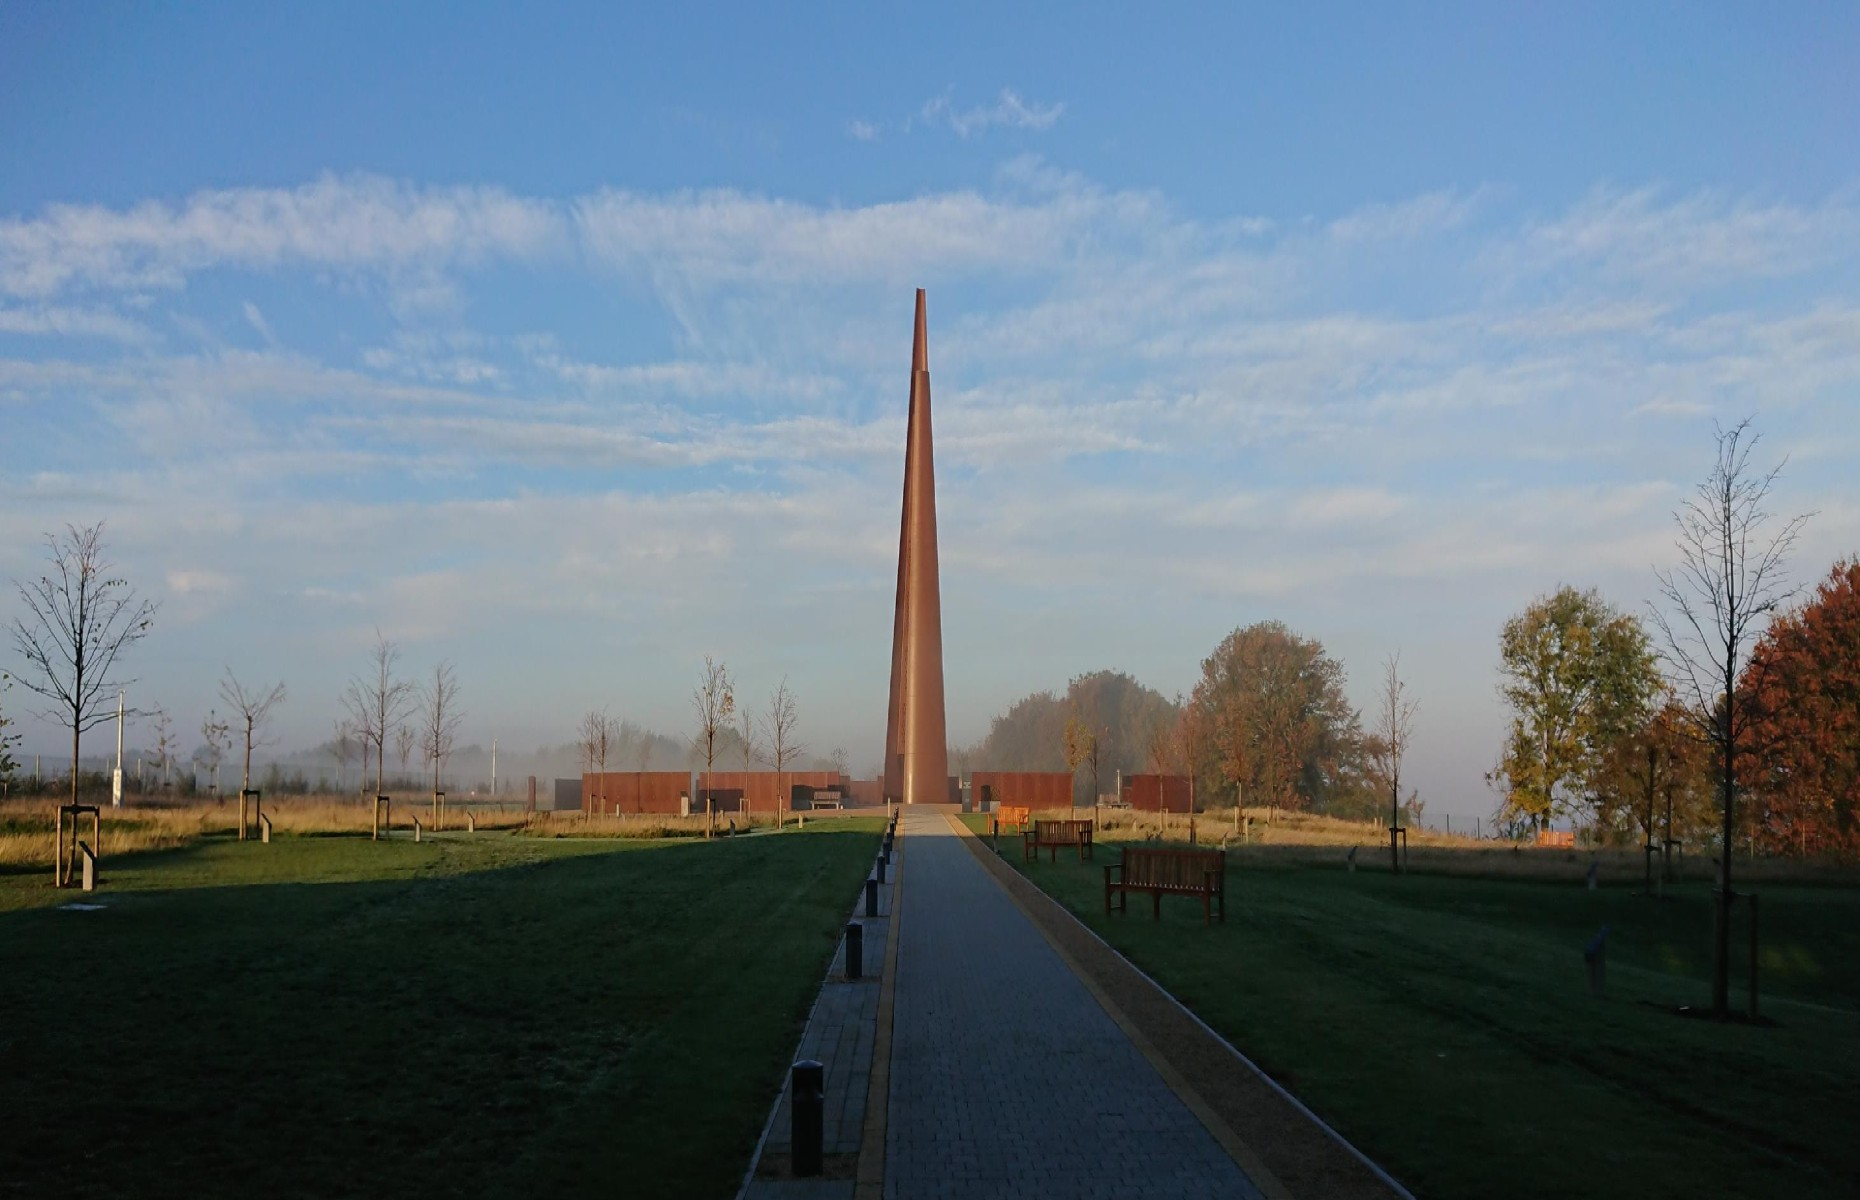 The ochre spire at the International Bomber Command Centre (Image: International Bomber Command Centre/Facebook)